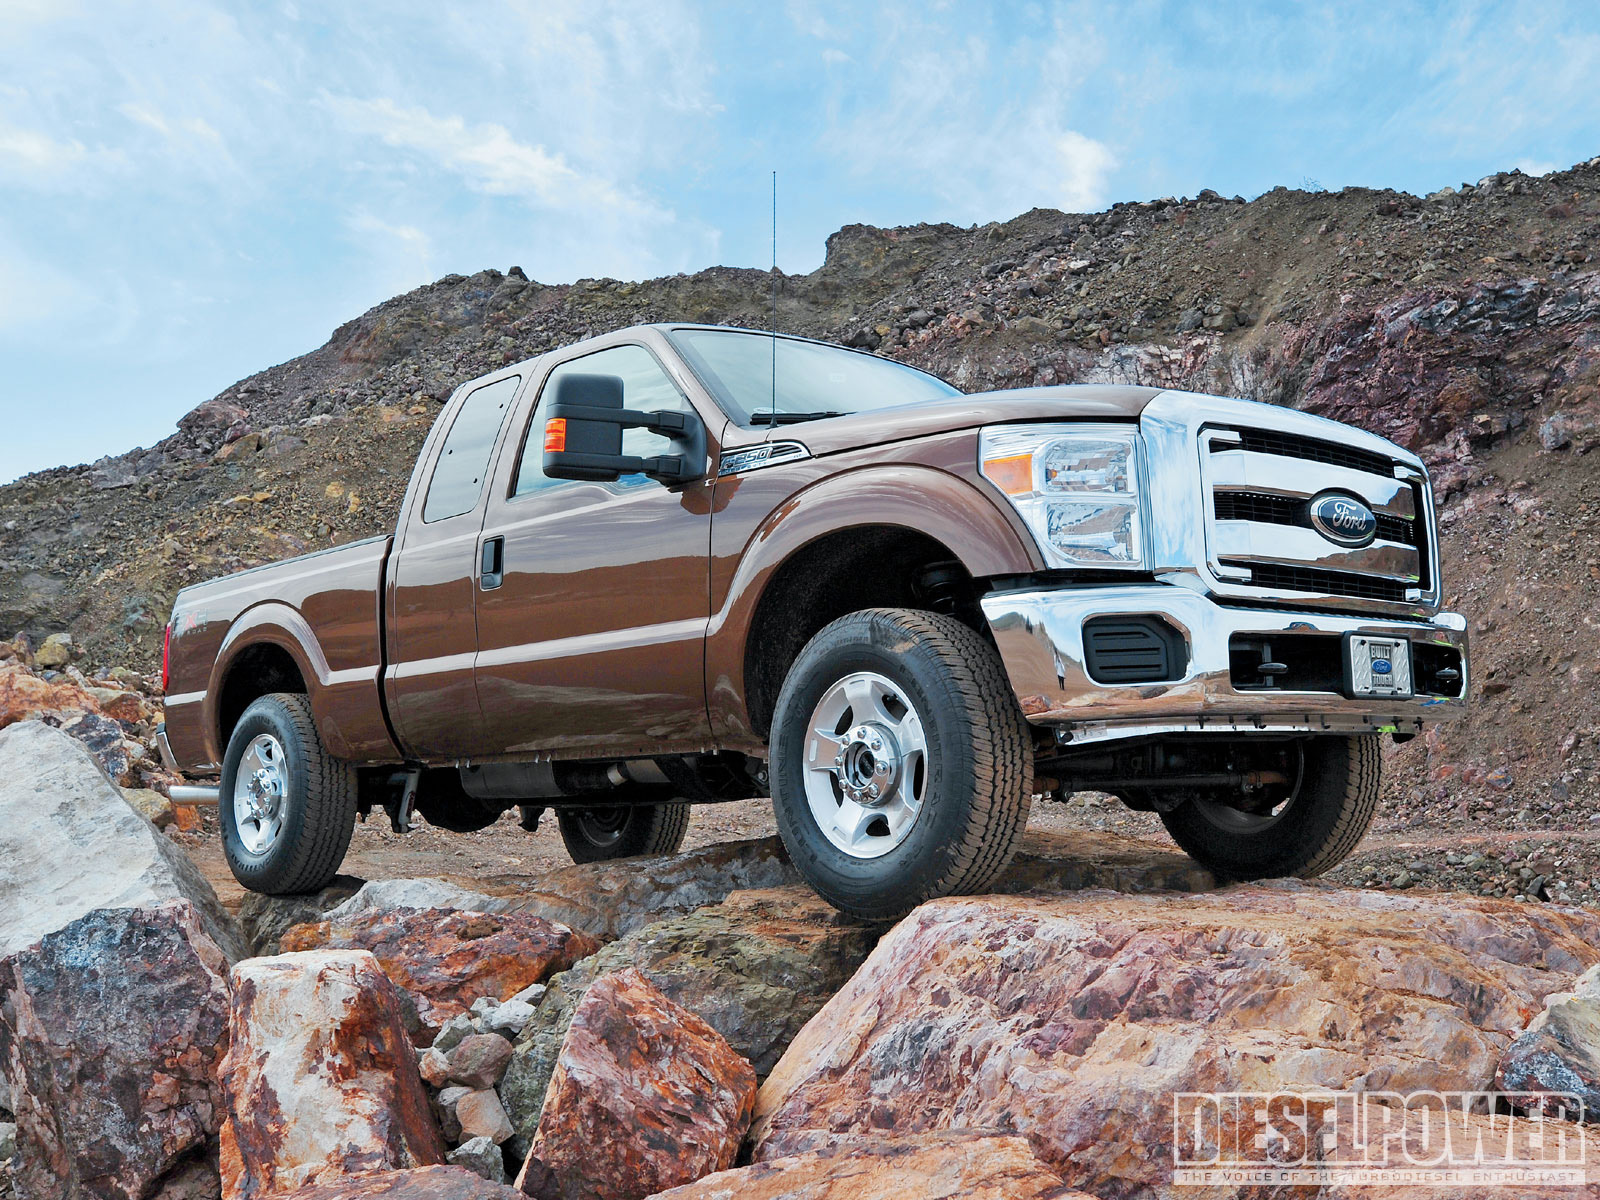 Wallpapers Ford F250 Diesel Ford F 250 Superduty Diesel Re Downloads 1600x1200